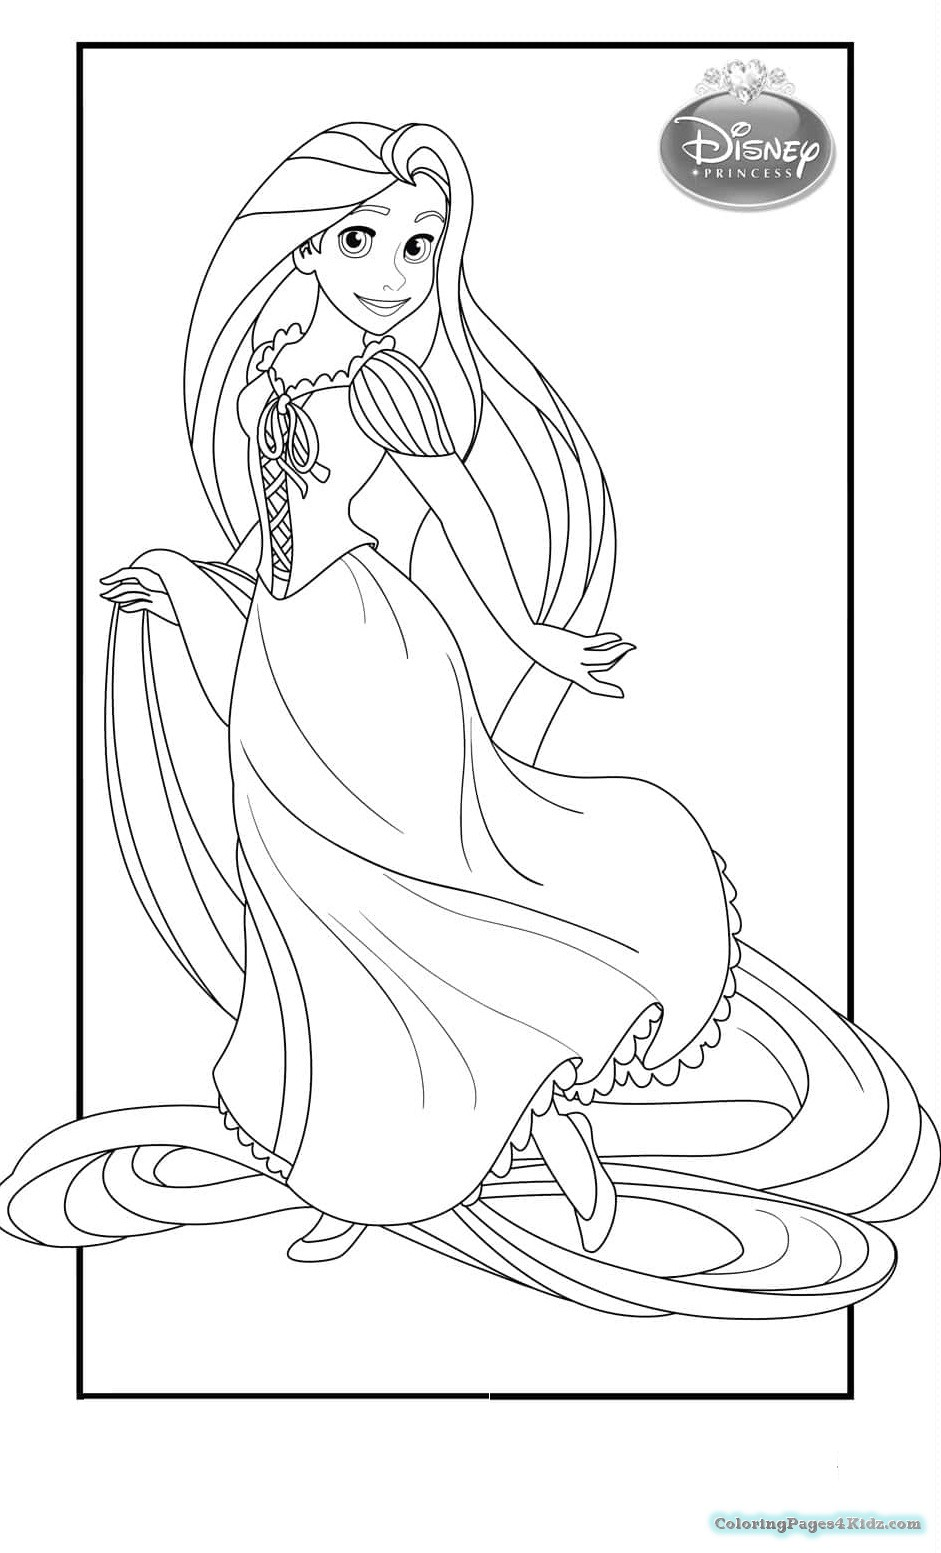 free printable rapunzel coloring pages rapunzel coloring pages best coloring pages for kids coloring printable free rapunzel pages